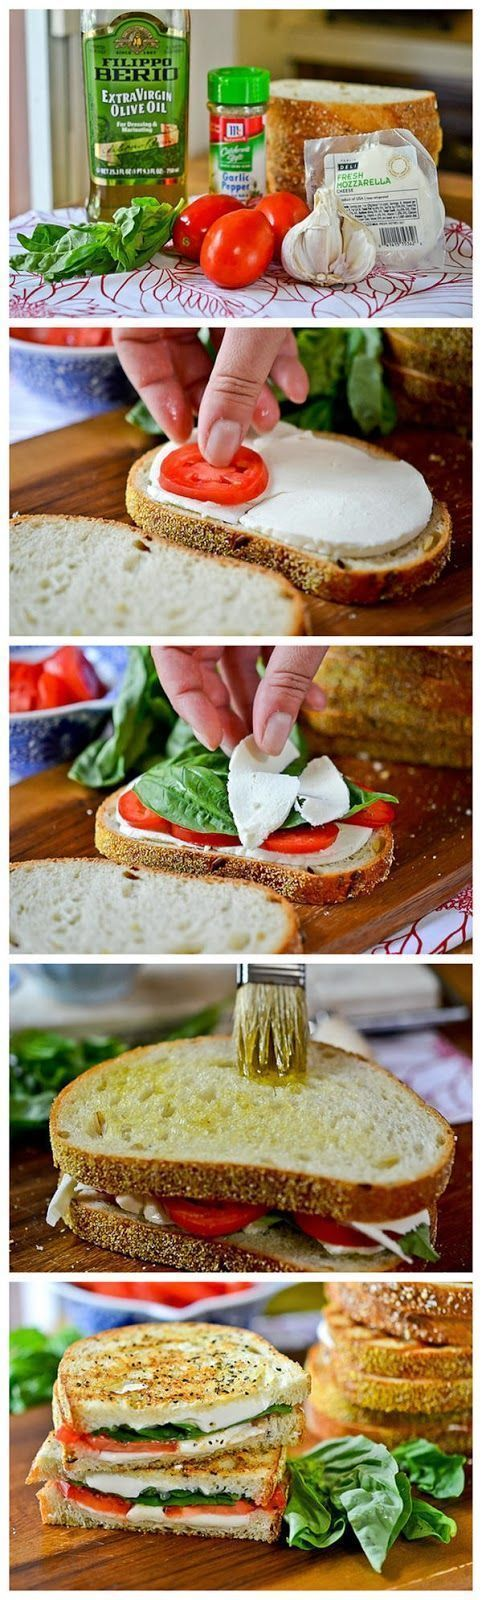 Grilled Margherita Sandwiches. If you looking for more clean eating recipes check out-> http://yummspiration.com We have some Vegan & Raw recipes too :) We are also on facebook.com/yummspiration